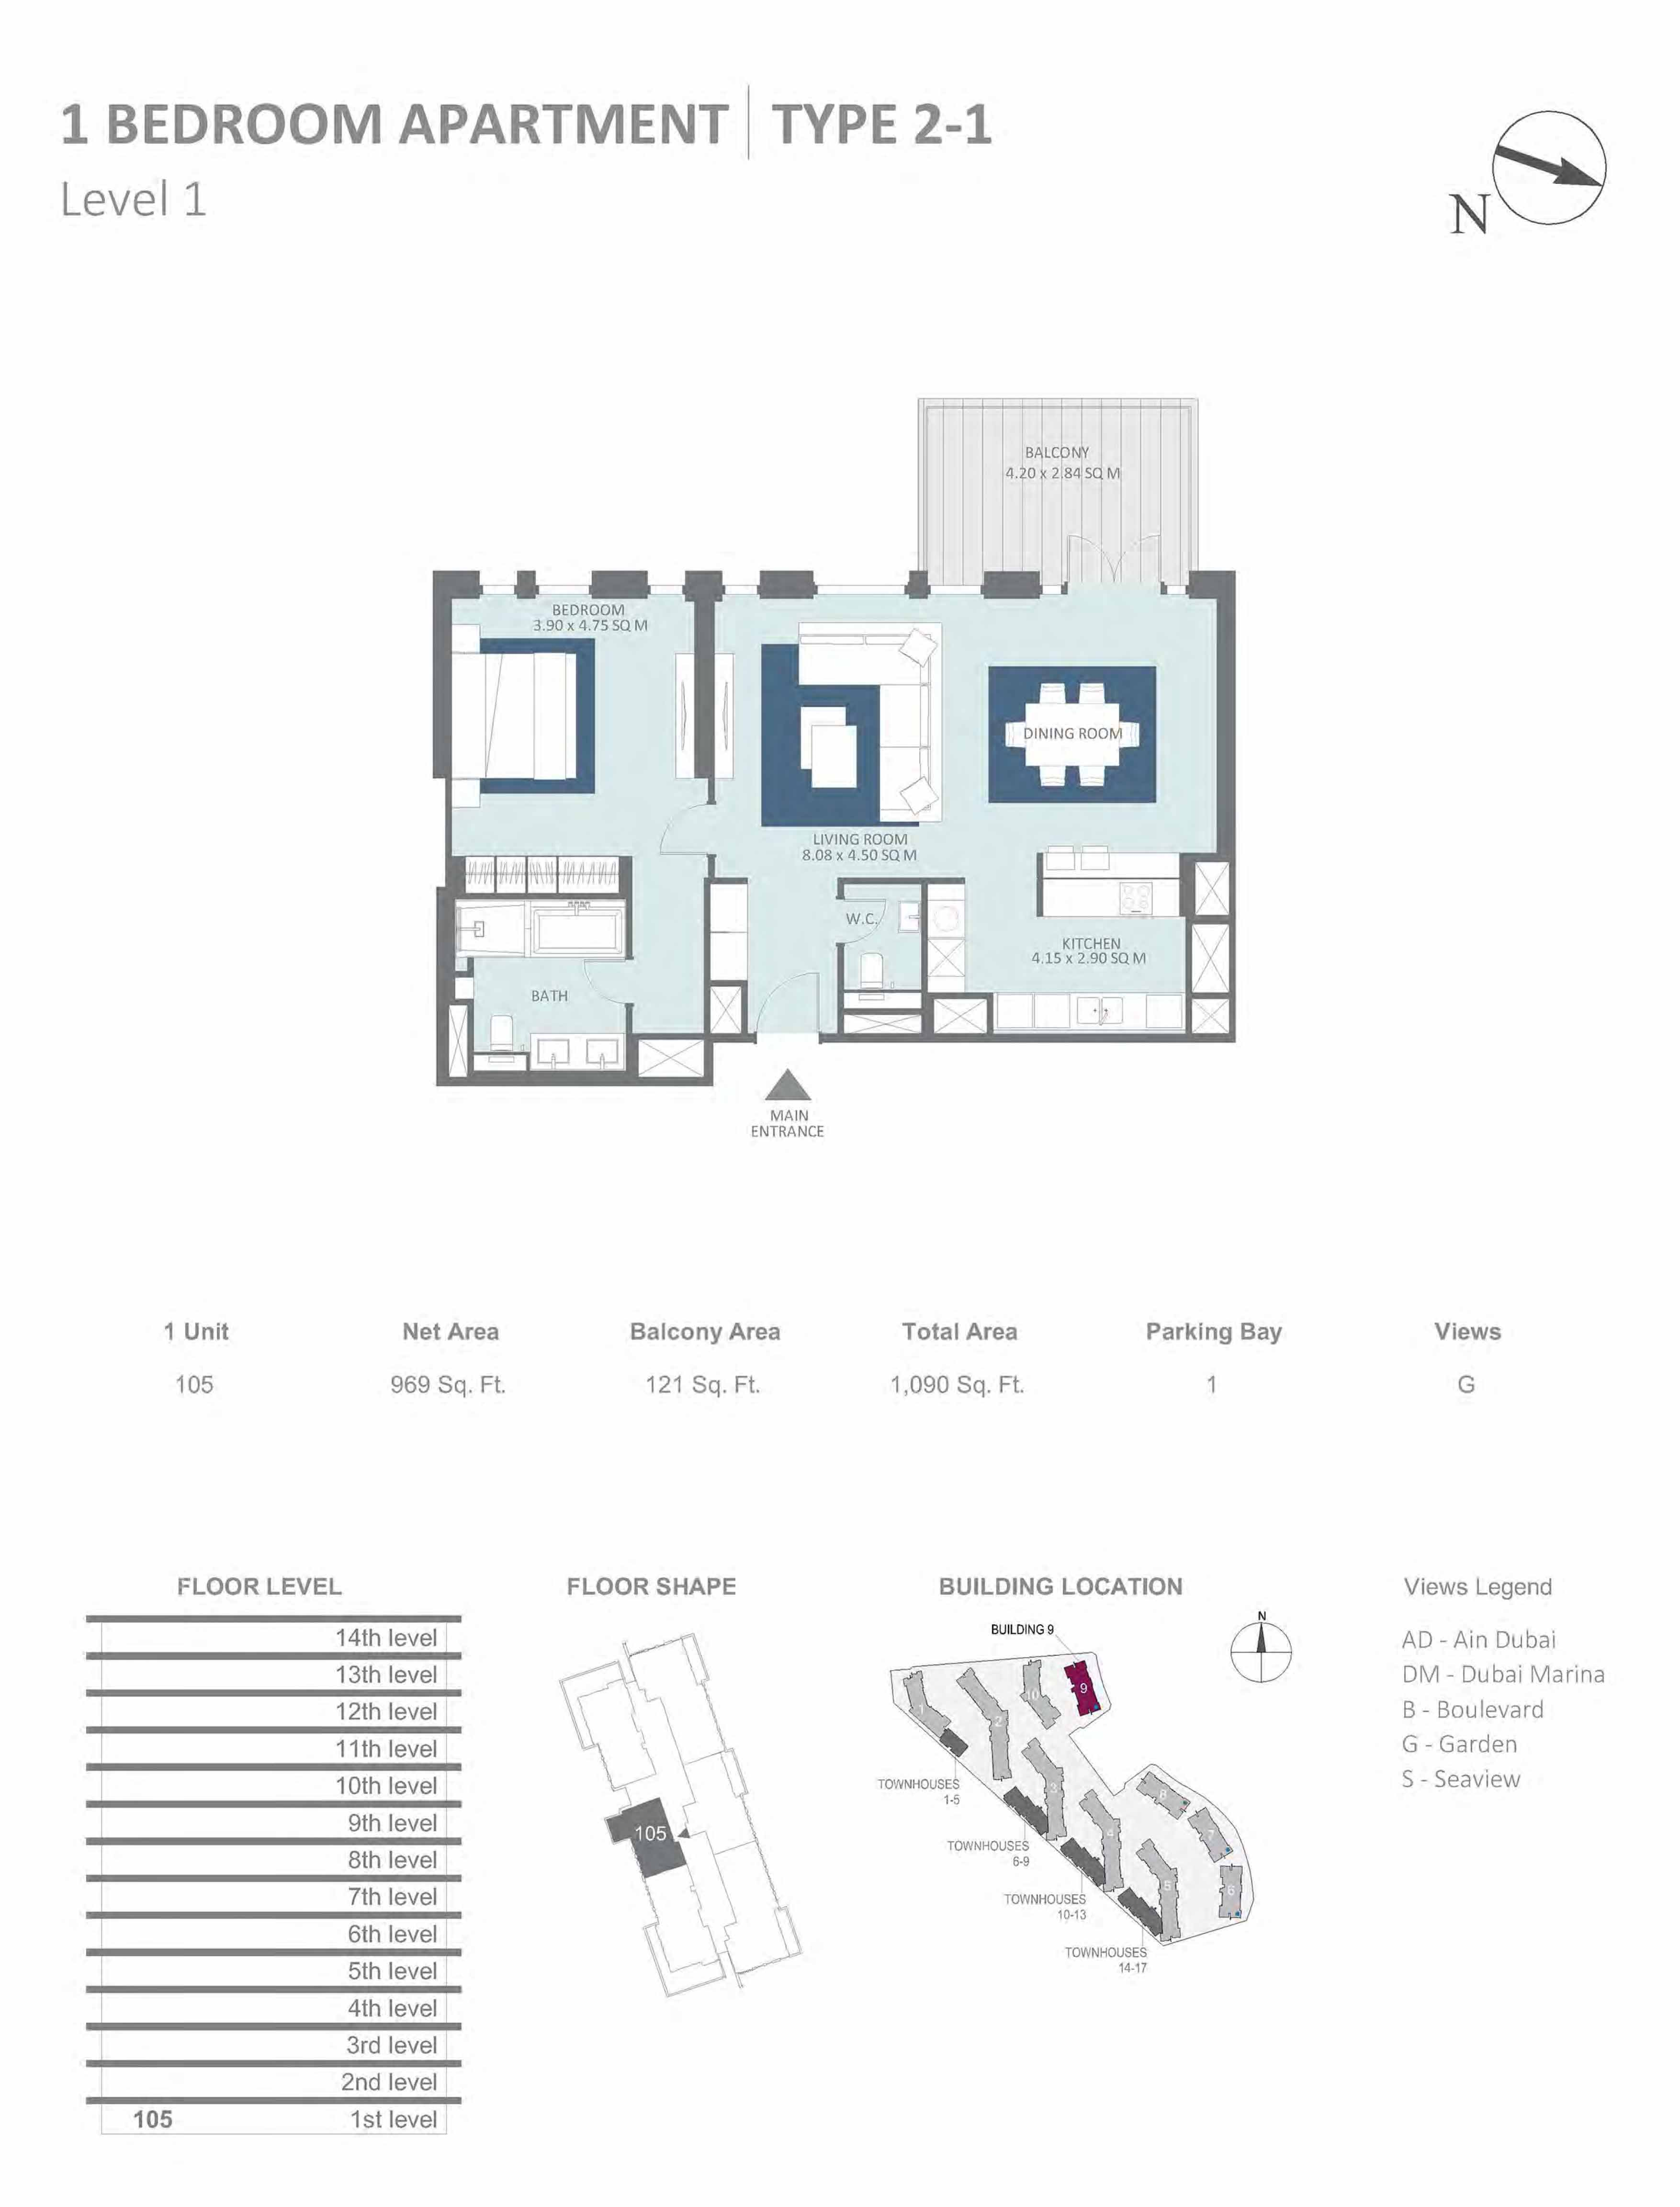 Building 9 - 1 Bedroom Type 2-1, Level 1 Size 1090 sq.ft